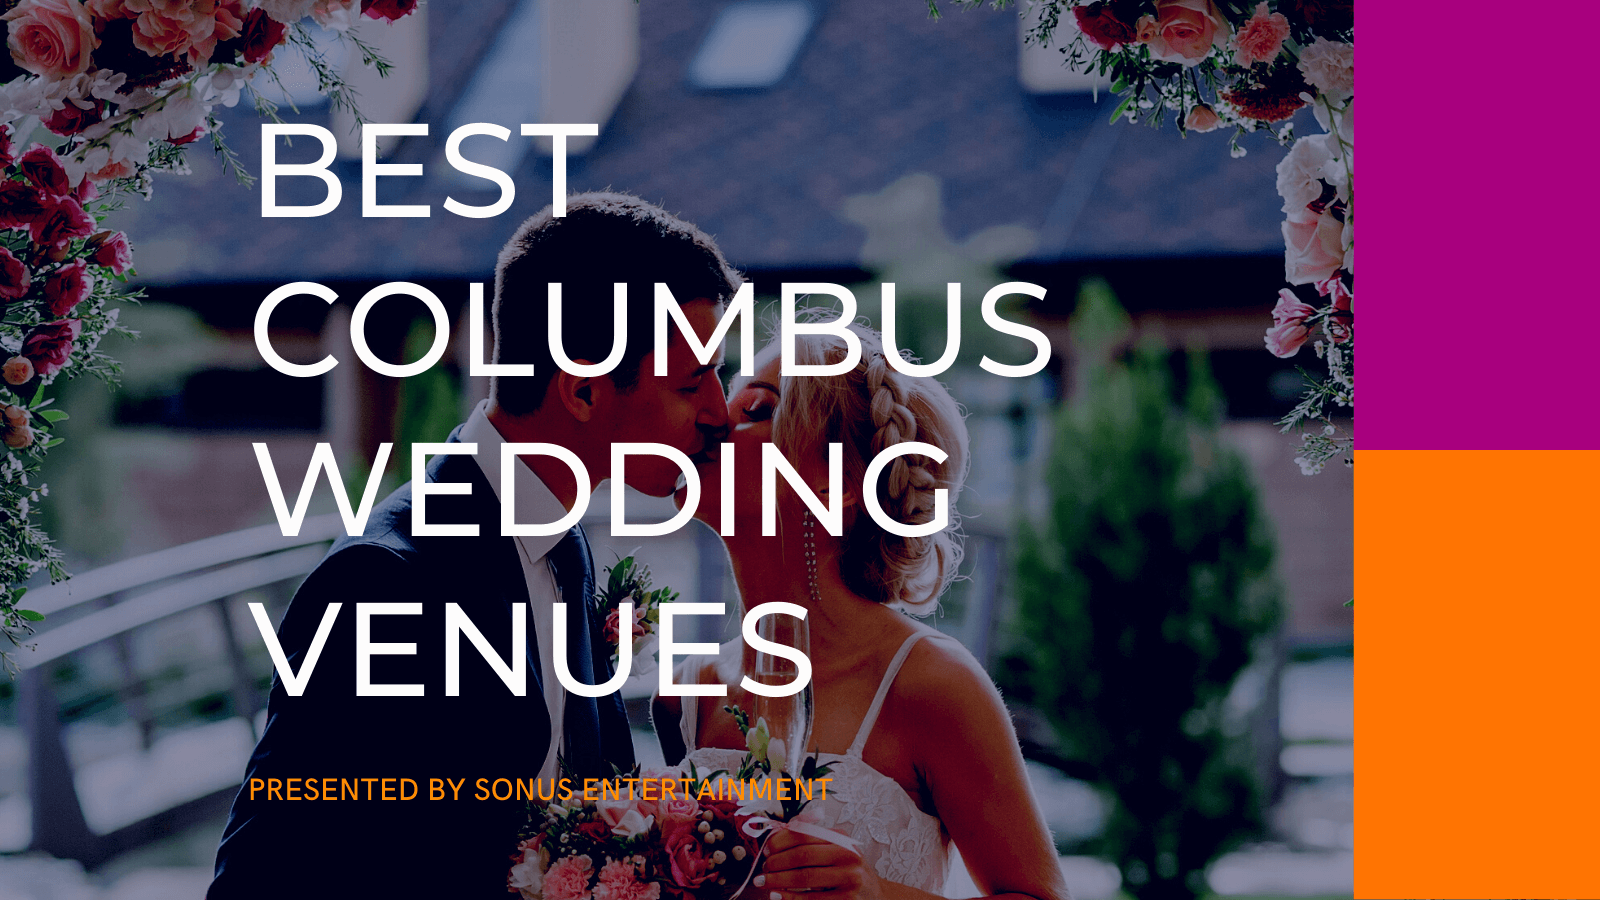 Best Columbus Wedding Venues | Presented by SONUS Entertainment - A Newlywed Husband and Wife Kissing at an Amazing Venue